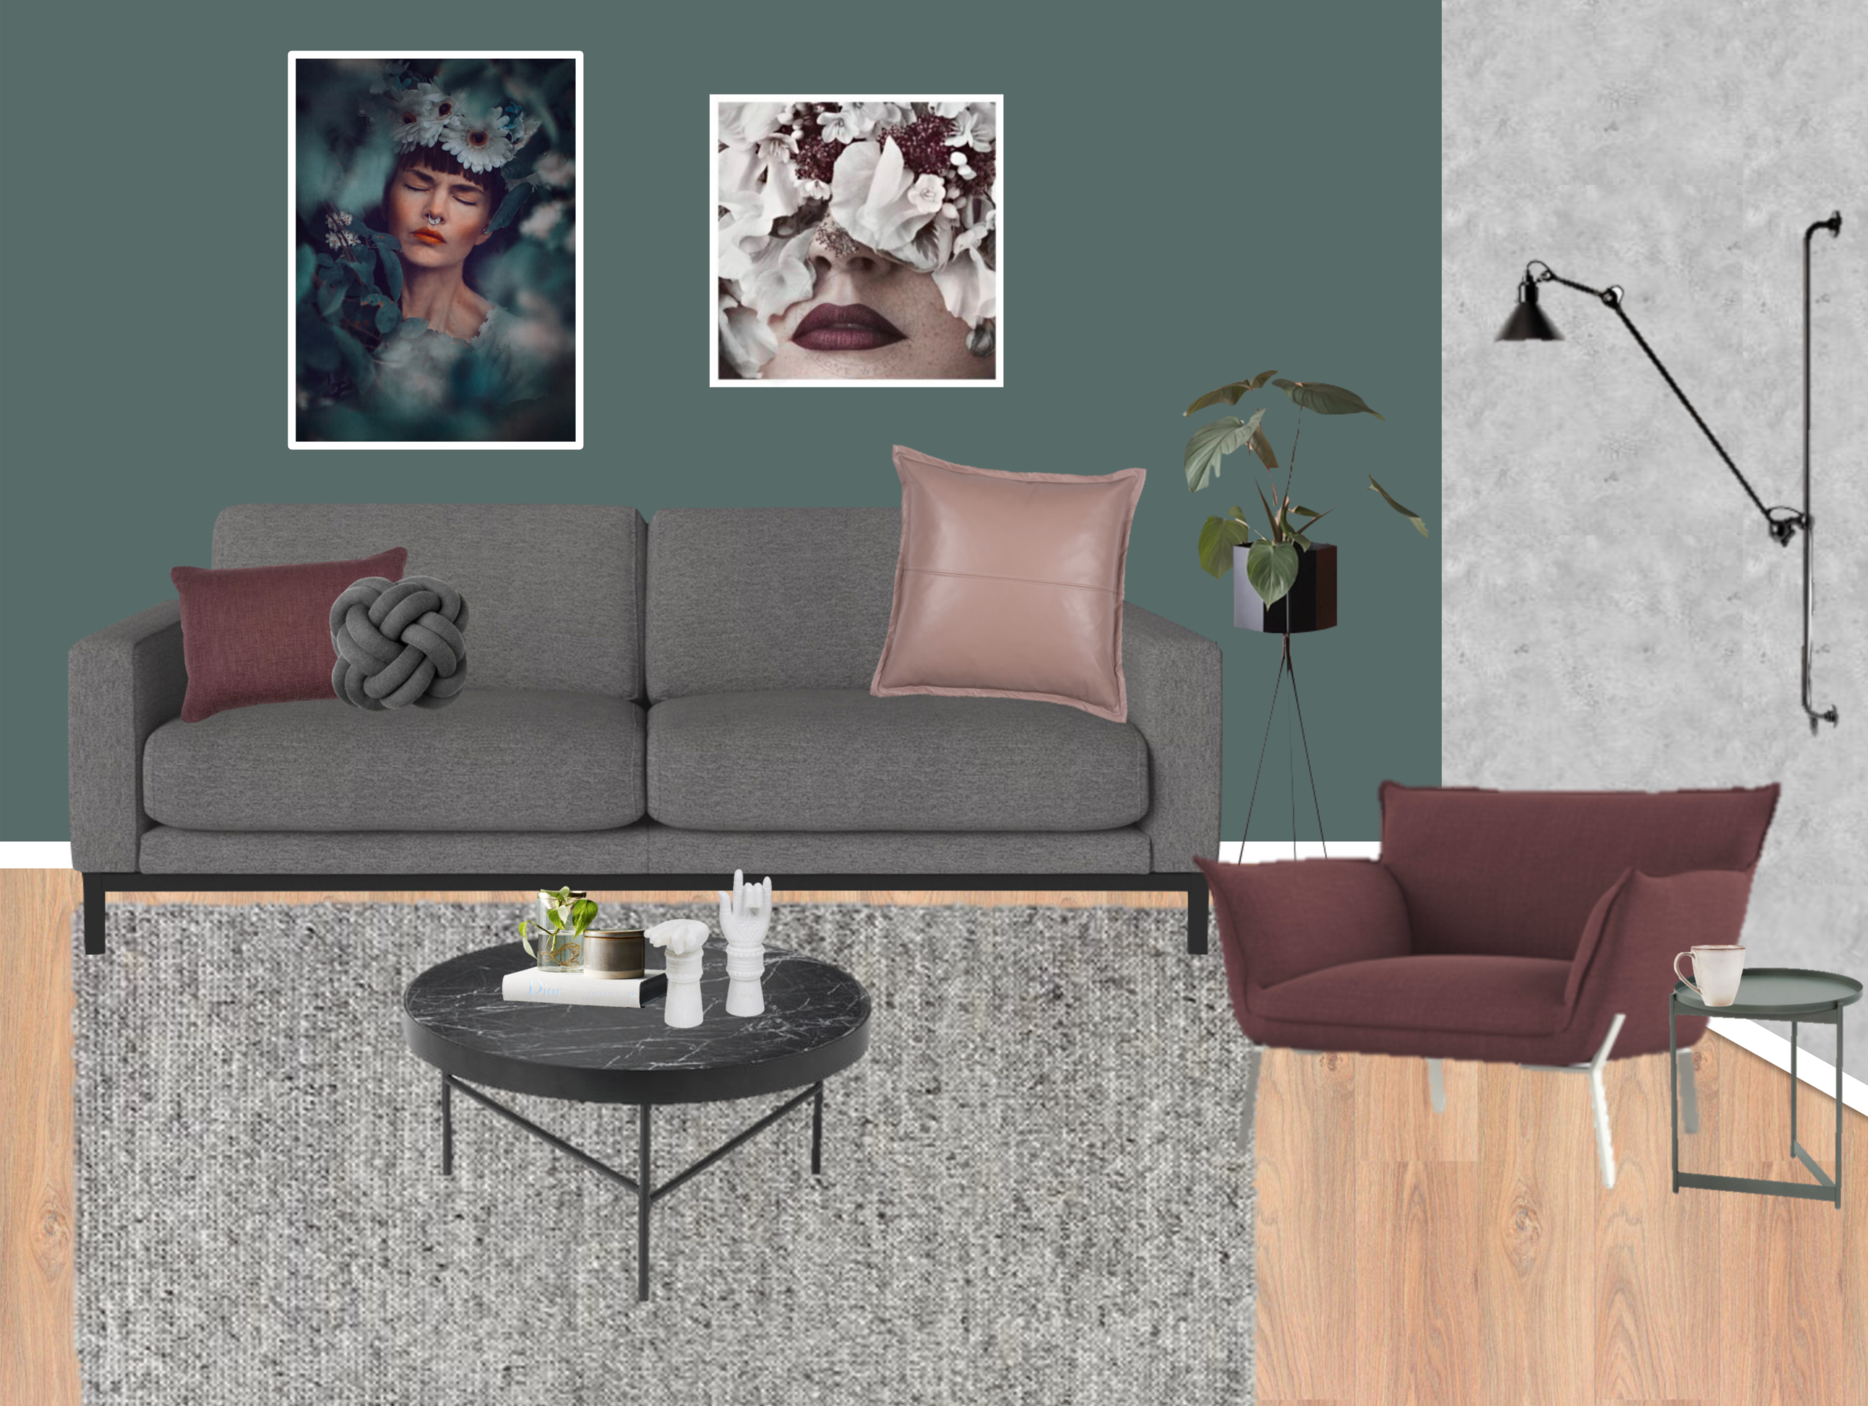 Product links: Bolia North Sofa /  Ferm Living Marble Coffee Table /  Jardan Lewis Armchair /  Jardan Phoenix Butler Side Table /  Lampe Gras No 214 /  Nathan + Jac Bardot Leather Cushion /  Nathan + Jac Clara Lumbar Cushion /  Design House Stockholm by UMEMI Not Knot Turk's Head Cushion /  Fenton & Fenton Marble Hands /  Nathan + Jac Casablanca Accessory Pack / Armadillo & Co Sherpa Weave Rug /  Ferm Living Plant Stand